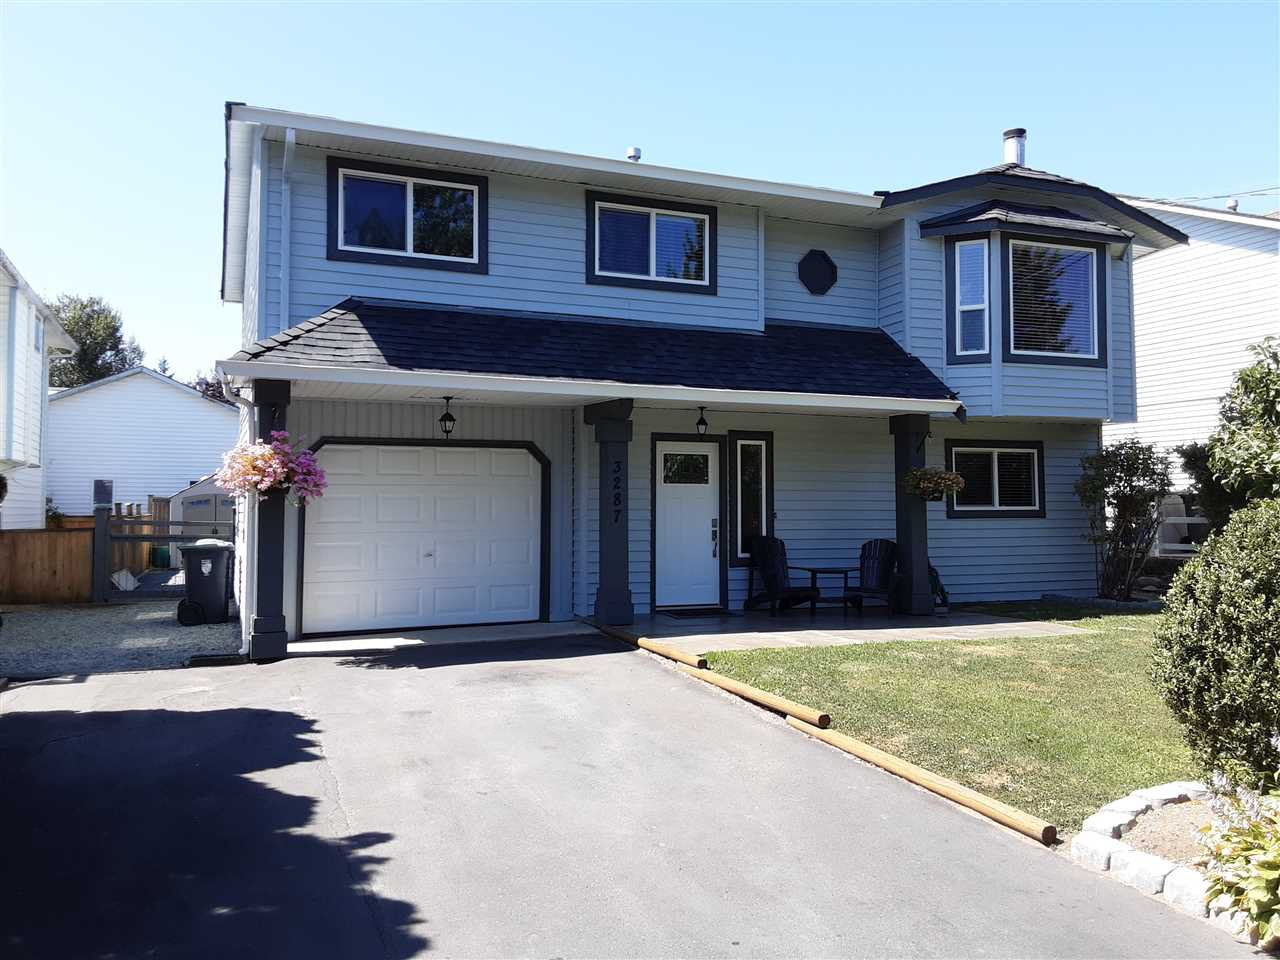 Photo 2: Photos: 3287 274 Street in Langley: Aldergrove Langley House for sale : MLS®# R2484329